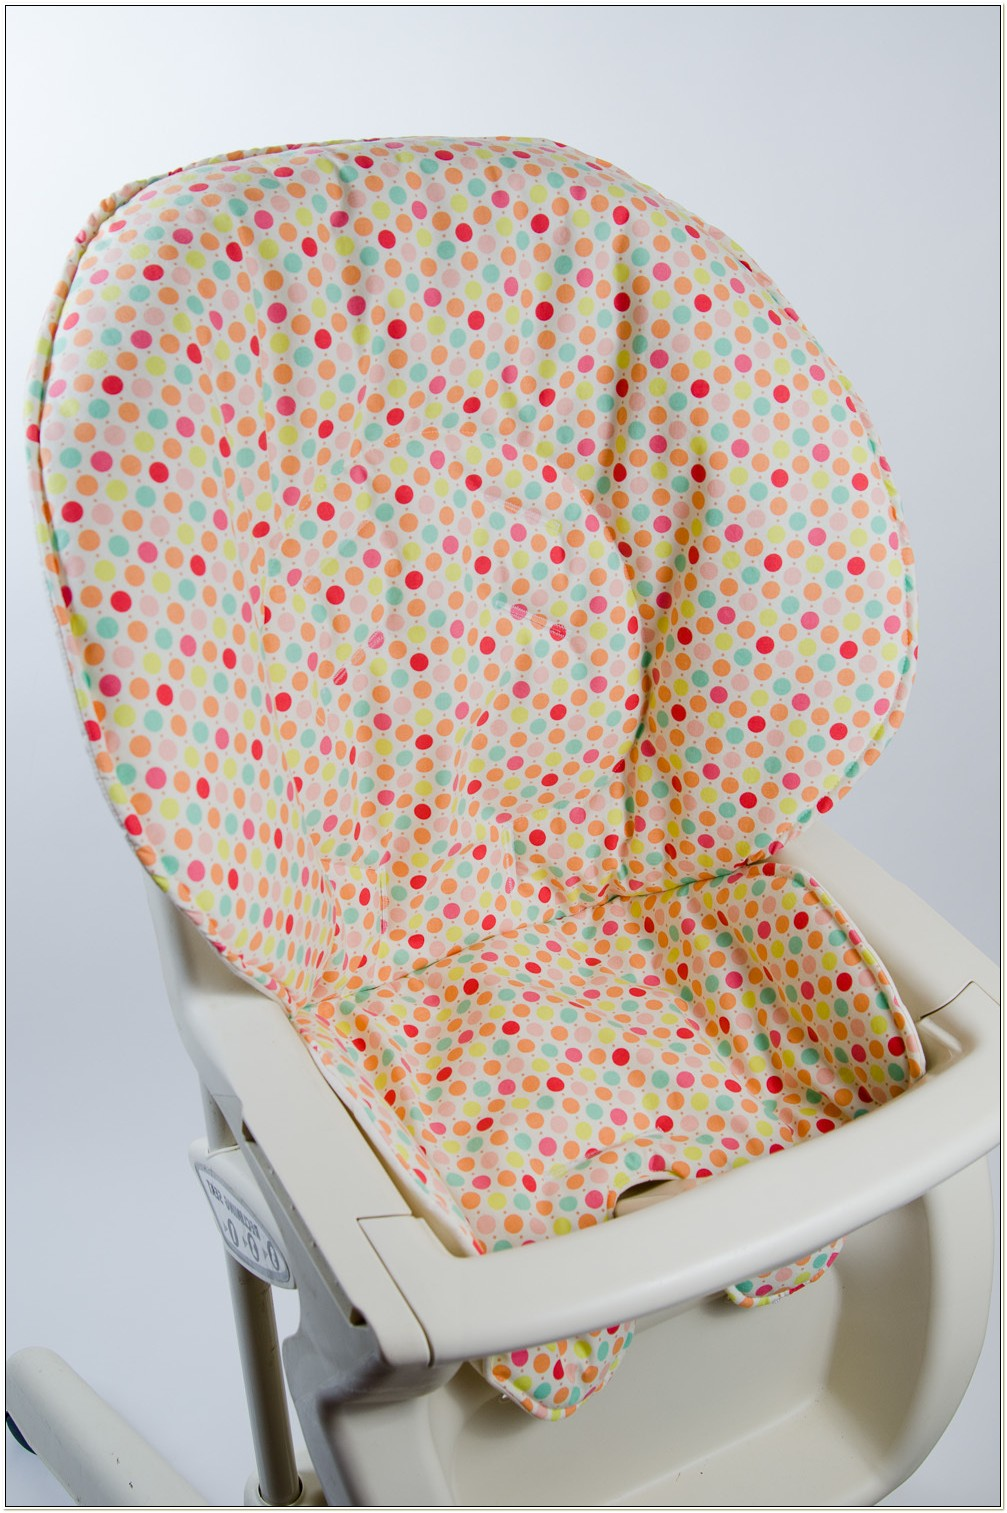 Graco Harmony High Chair Cover Replacement